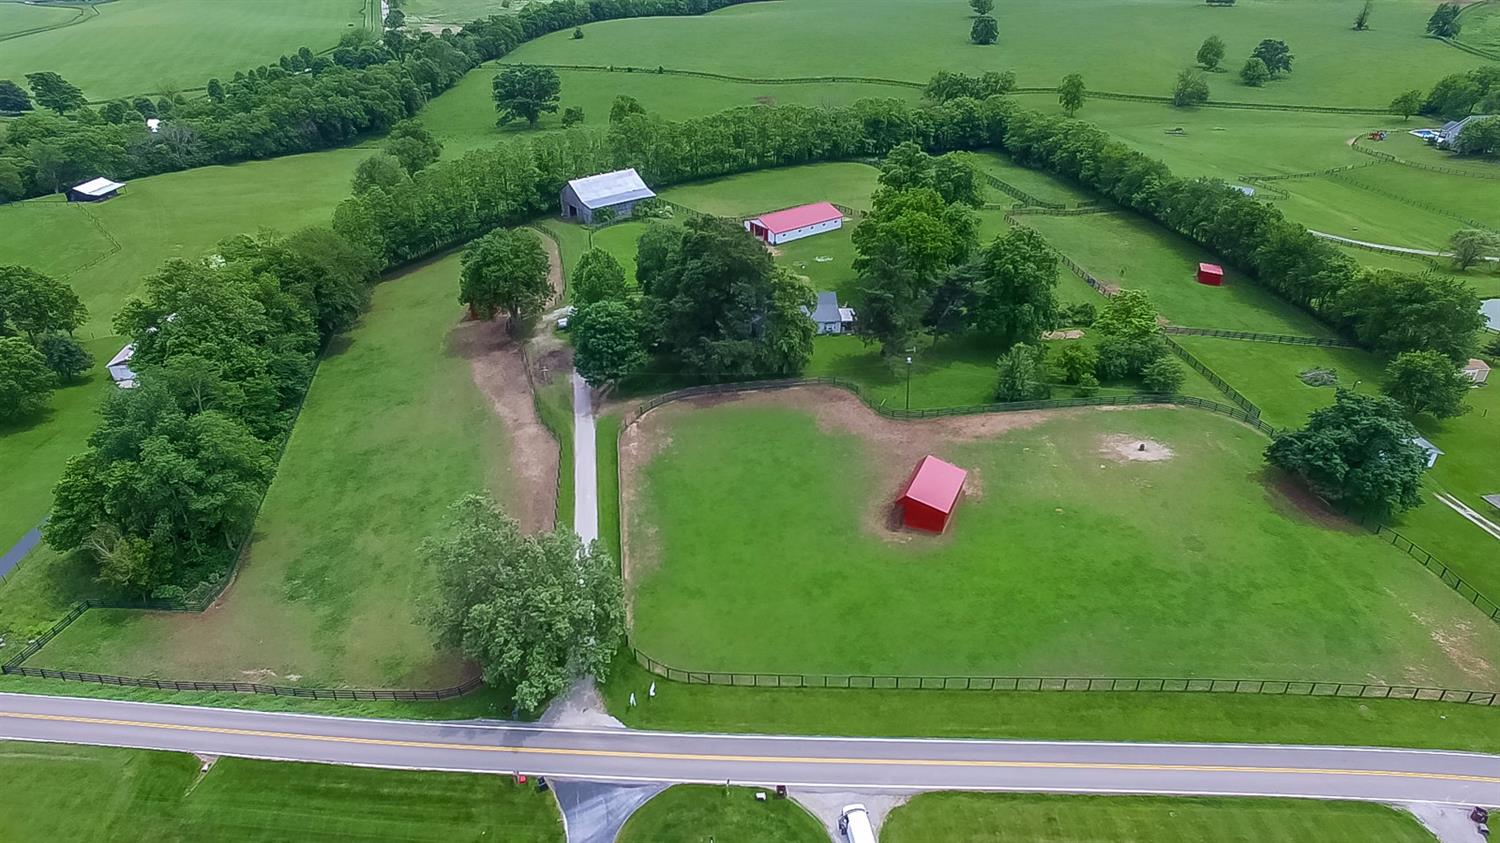 Turn-Key%20horse%20operation%20in%20wonderful%20location.%20%20Easy%20access%20to%20interstate%2064,%20Midway,%20Versailles,%20and%20Lexington.%20%206%20stall%20horse%20barn%20built%20in%202016%20with%20wash%20bay,%20tack%20room,%20half%20bath,%20and%20feed%20storage%20area.%207%20paddocks%20with%20plank%20fencing,%20water,%20and%20Run-Sheds.%20there%20is%20also%20a%20nice%20older%20home%20and%20tobacco%20barn%20on%20the%20property.